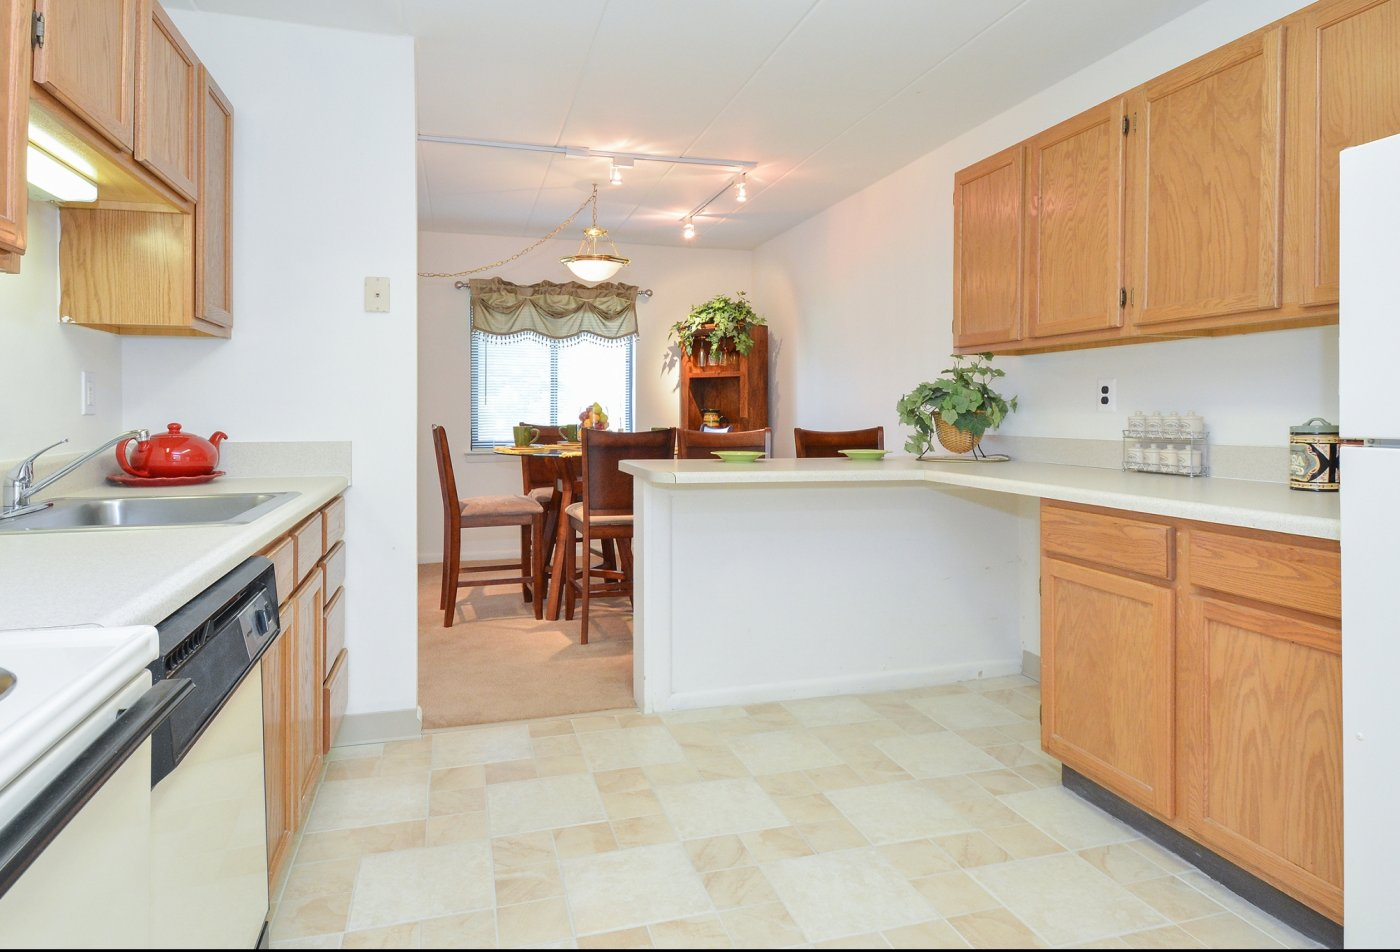 State-of-the-Art Kitchen | Wilmington DE Apartment Homes | Fairway Park Apartments & Townhomes